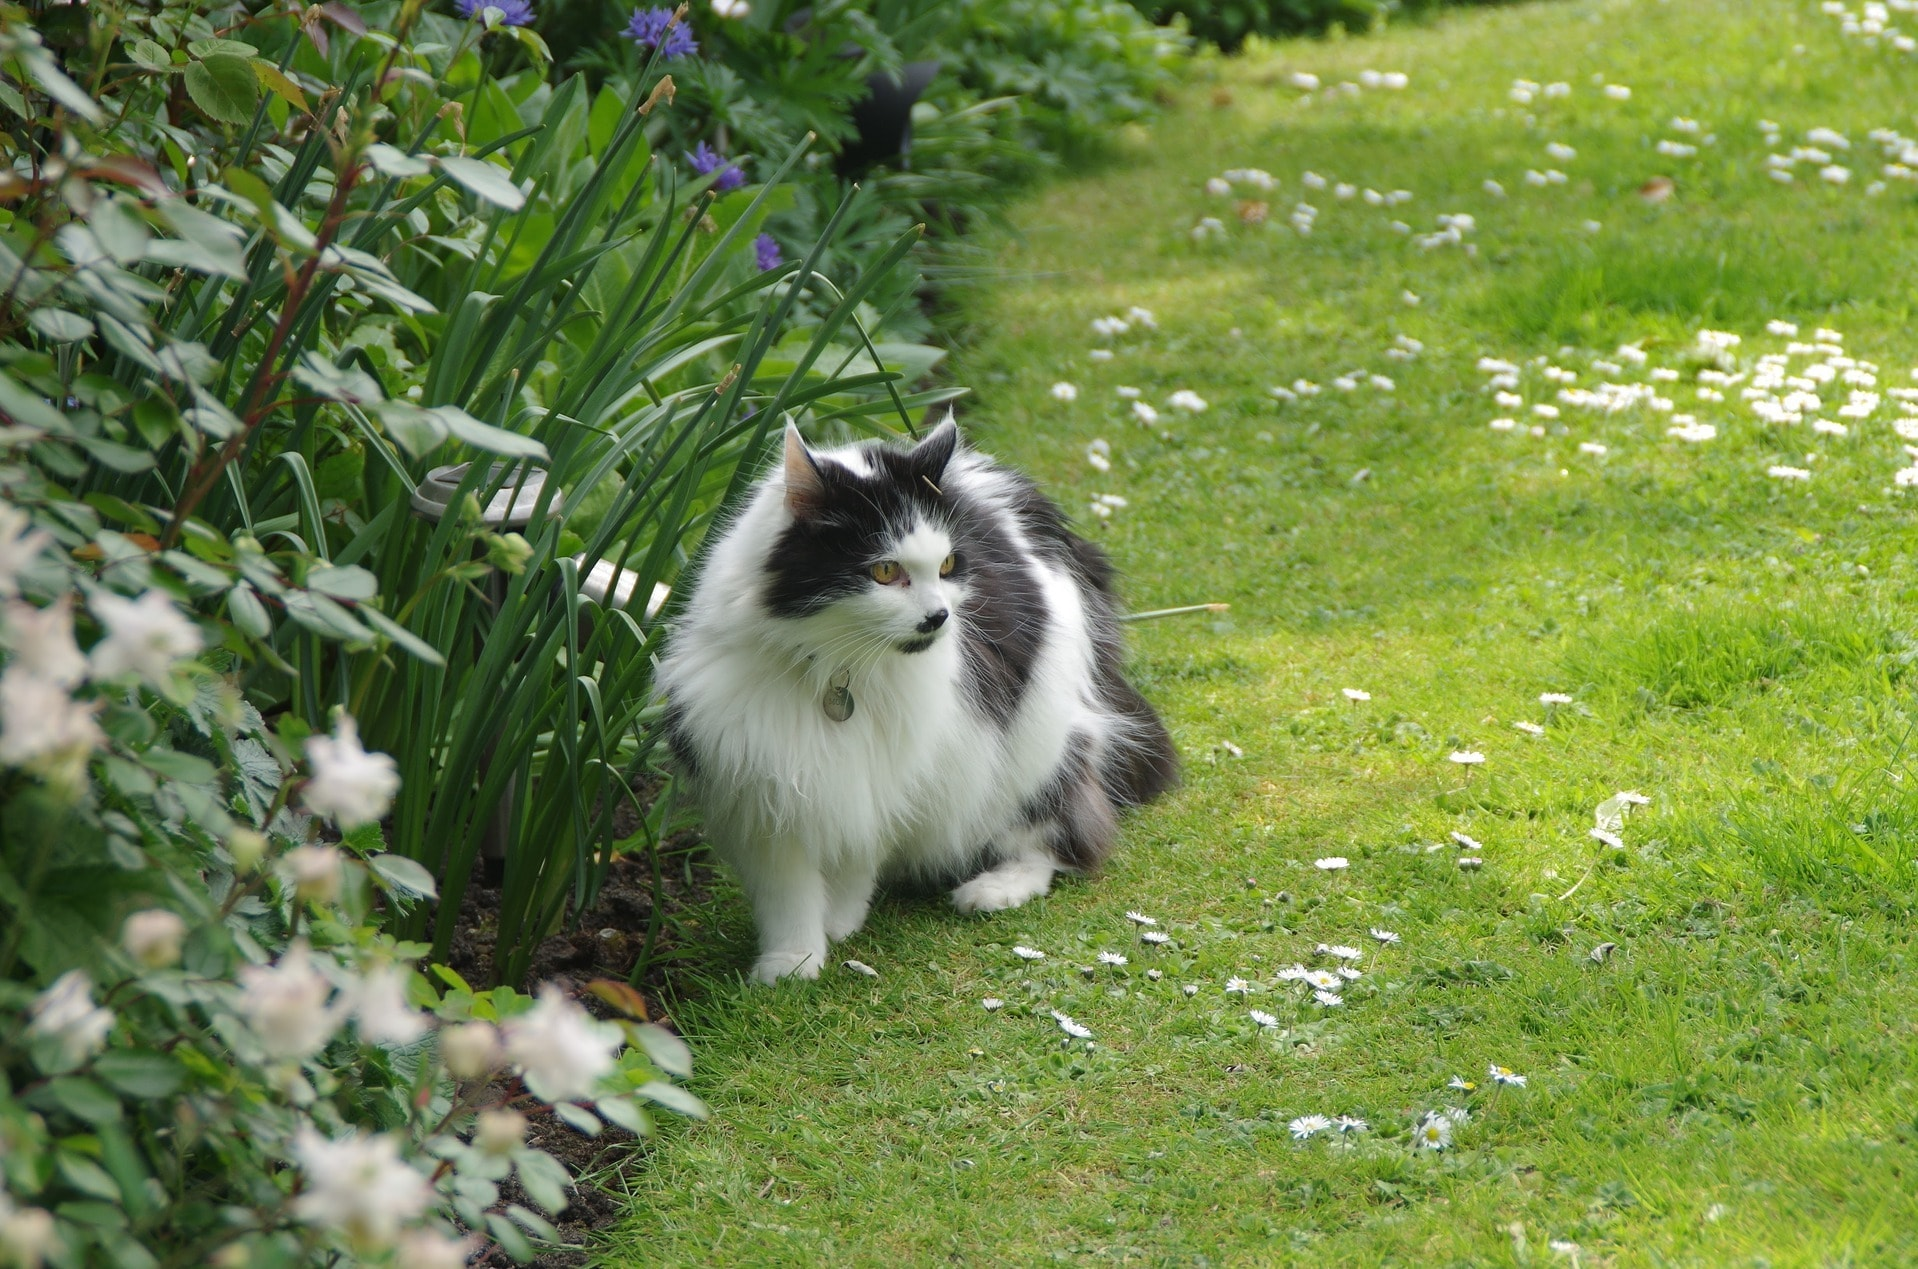 longhaired cat on green lawn by native plant garden